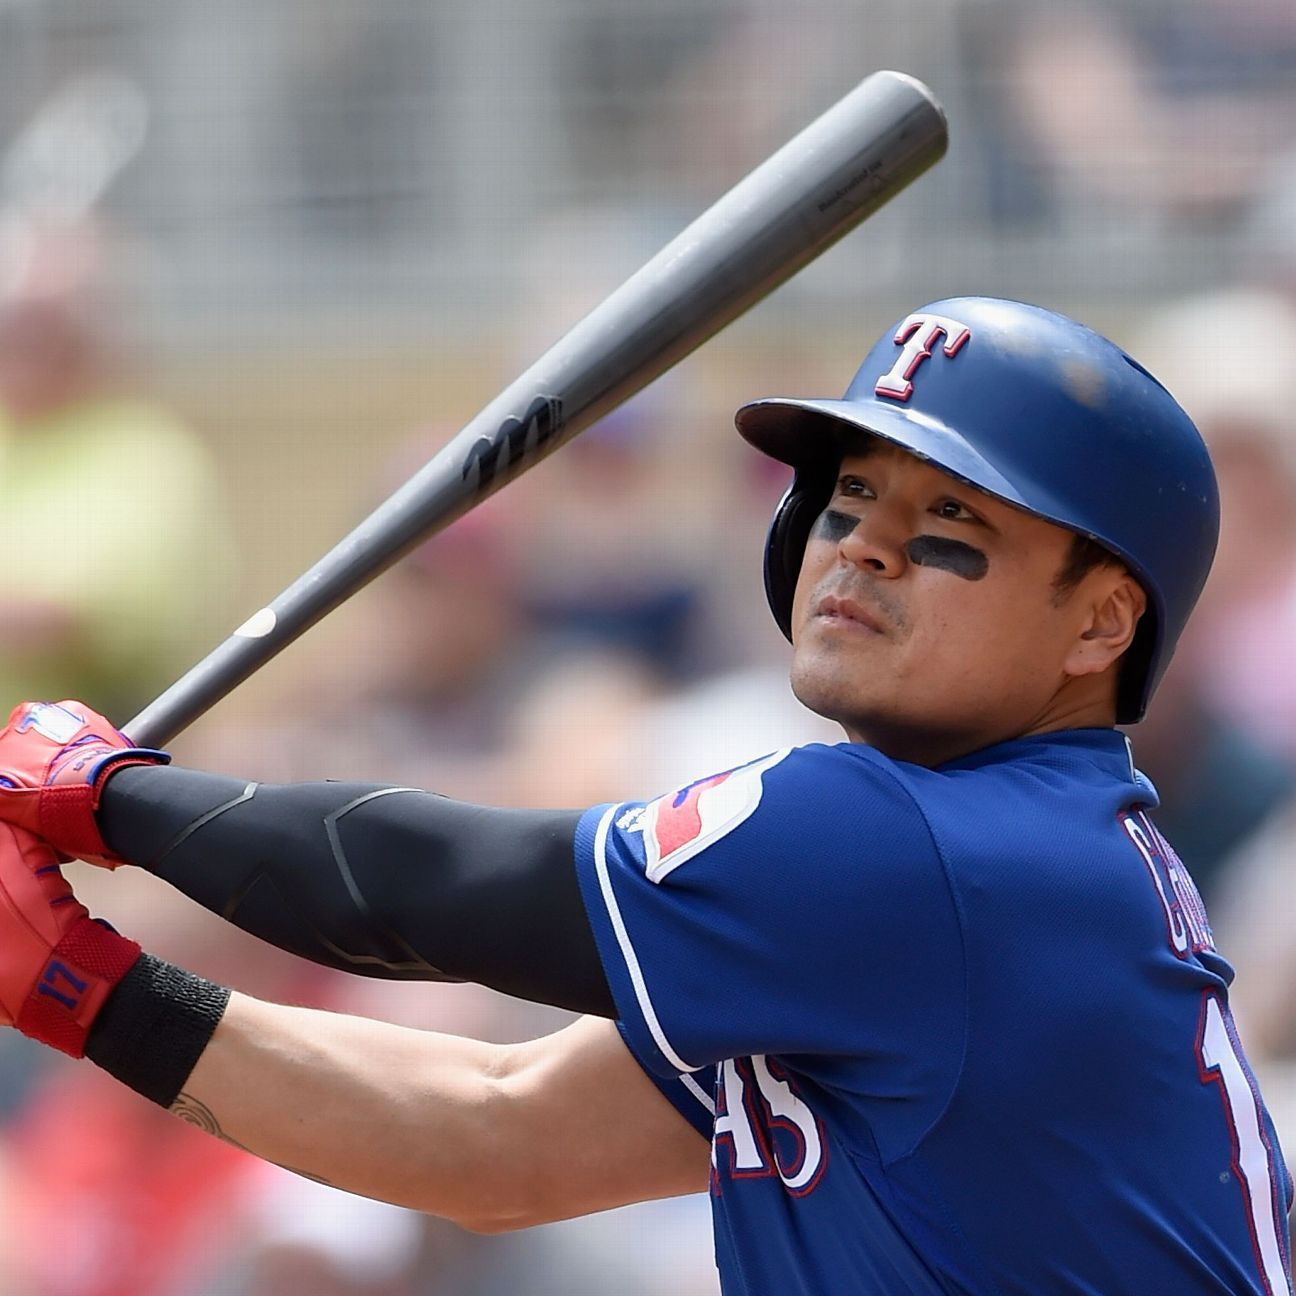 MLB -- Who could the Cubs target at the trade deadline?